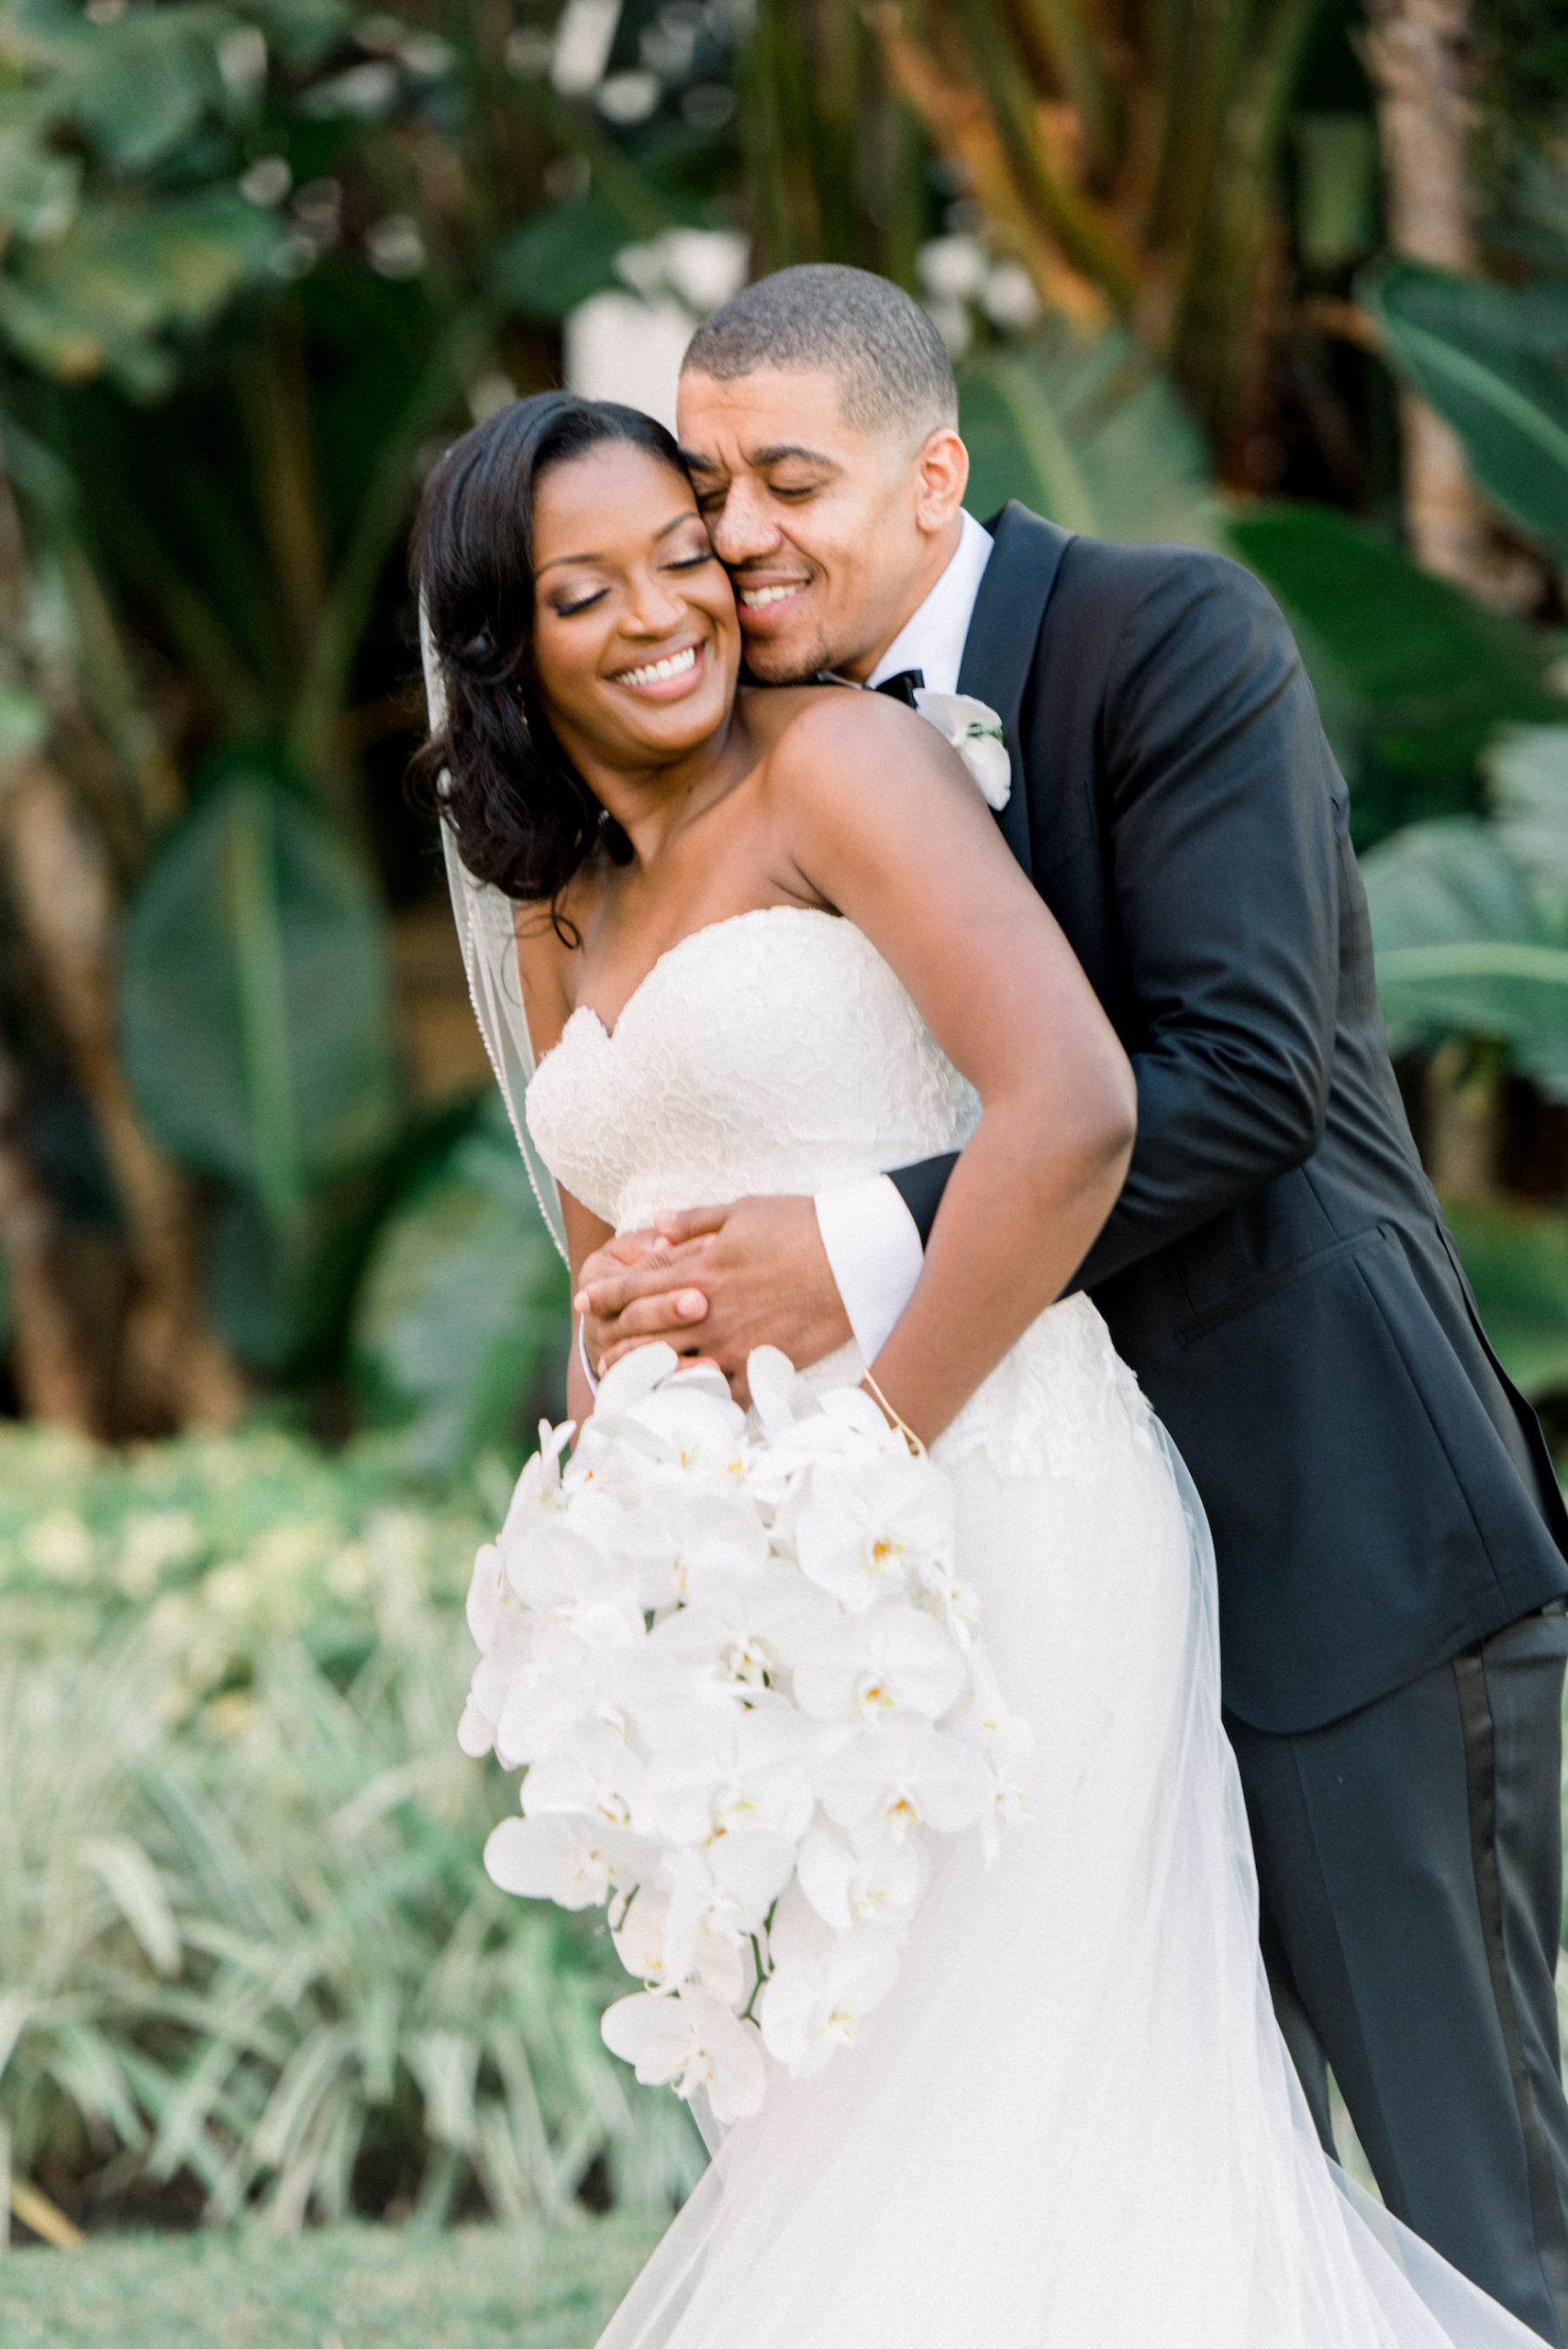 Classic Bride in Lace Strapless Sweetheart Wedding Dress Holding White Orchid Floral Bouquet, Groom in Black Tuxedo